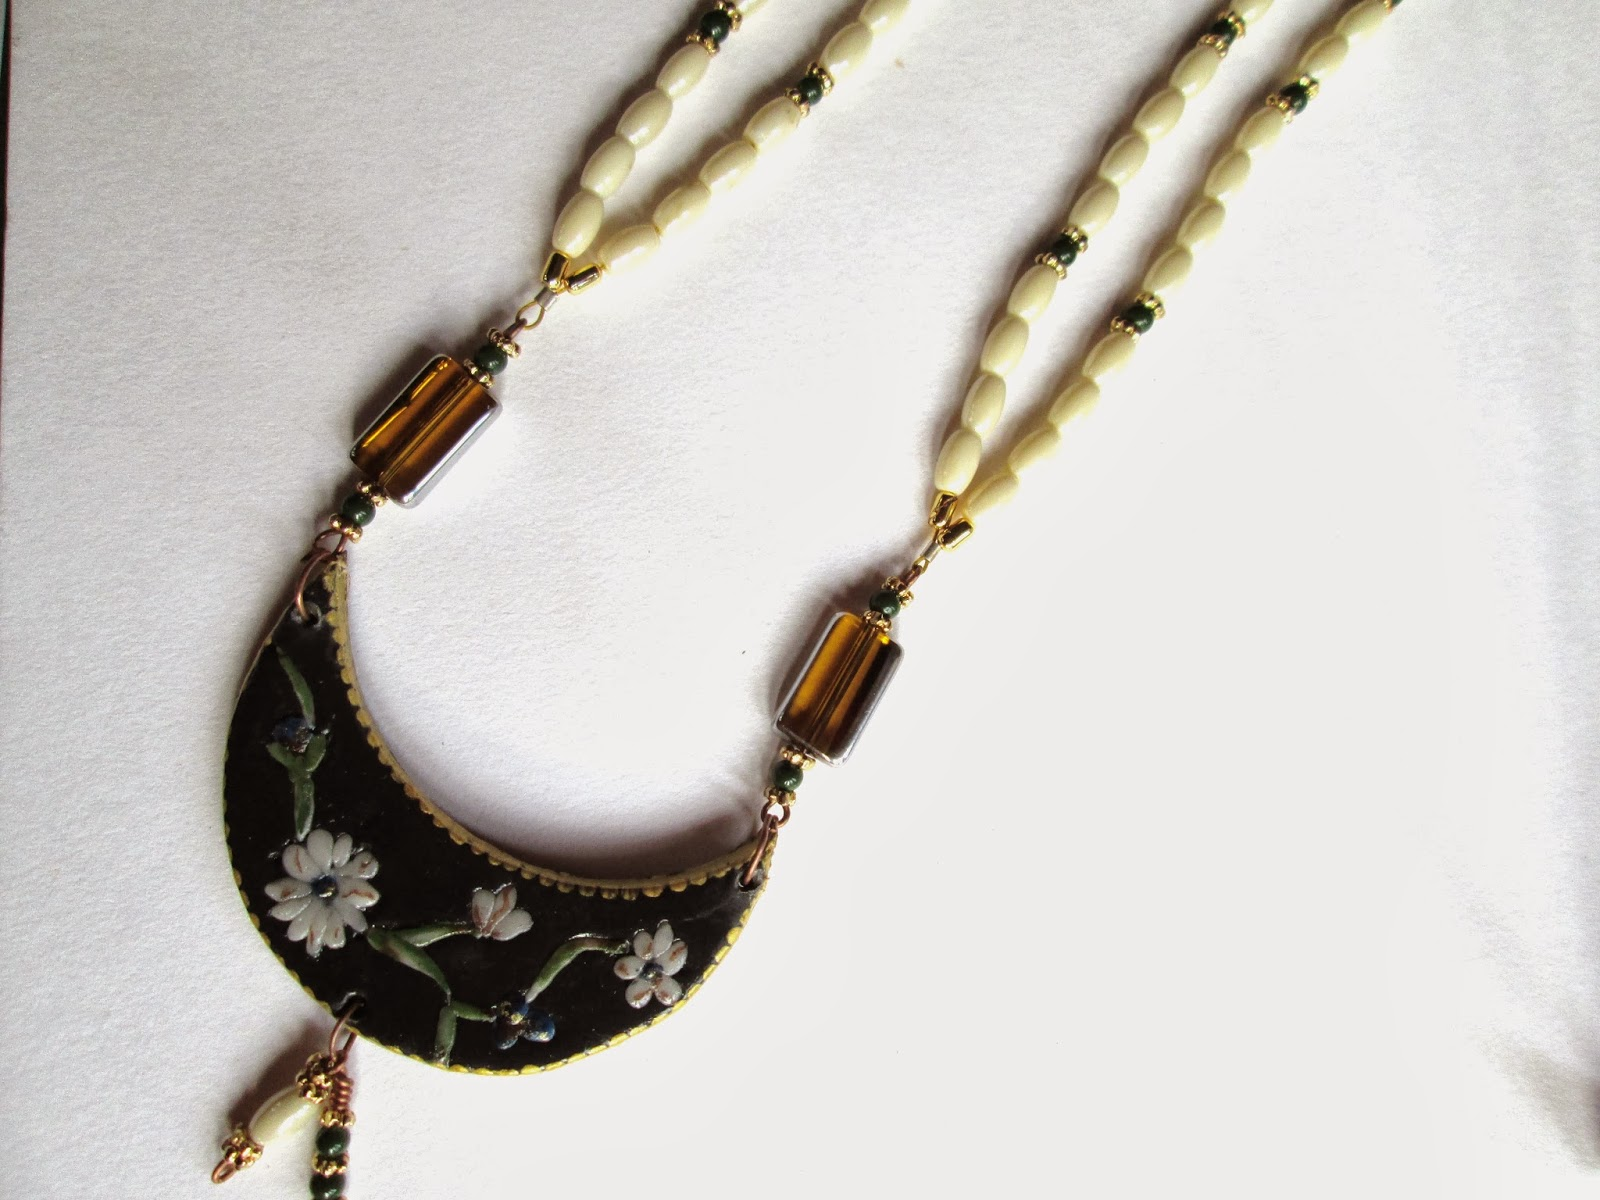 Cold Porcelain Jewelry